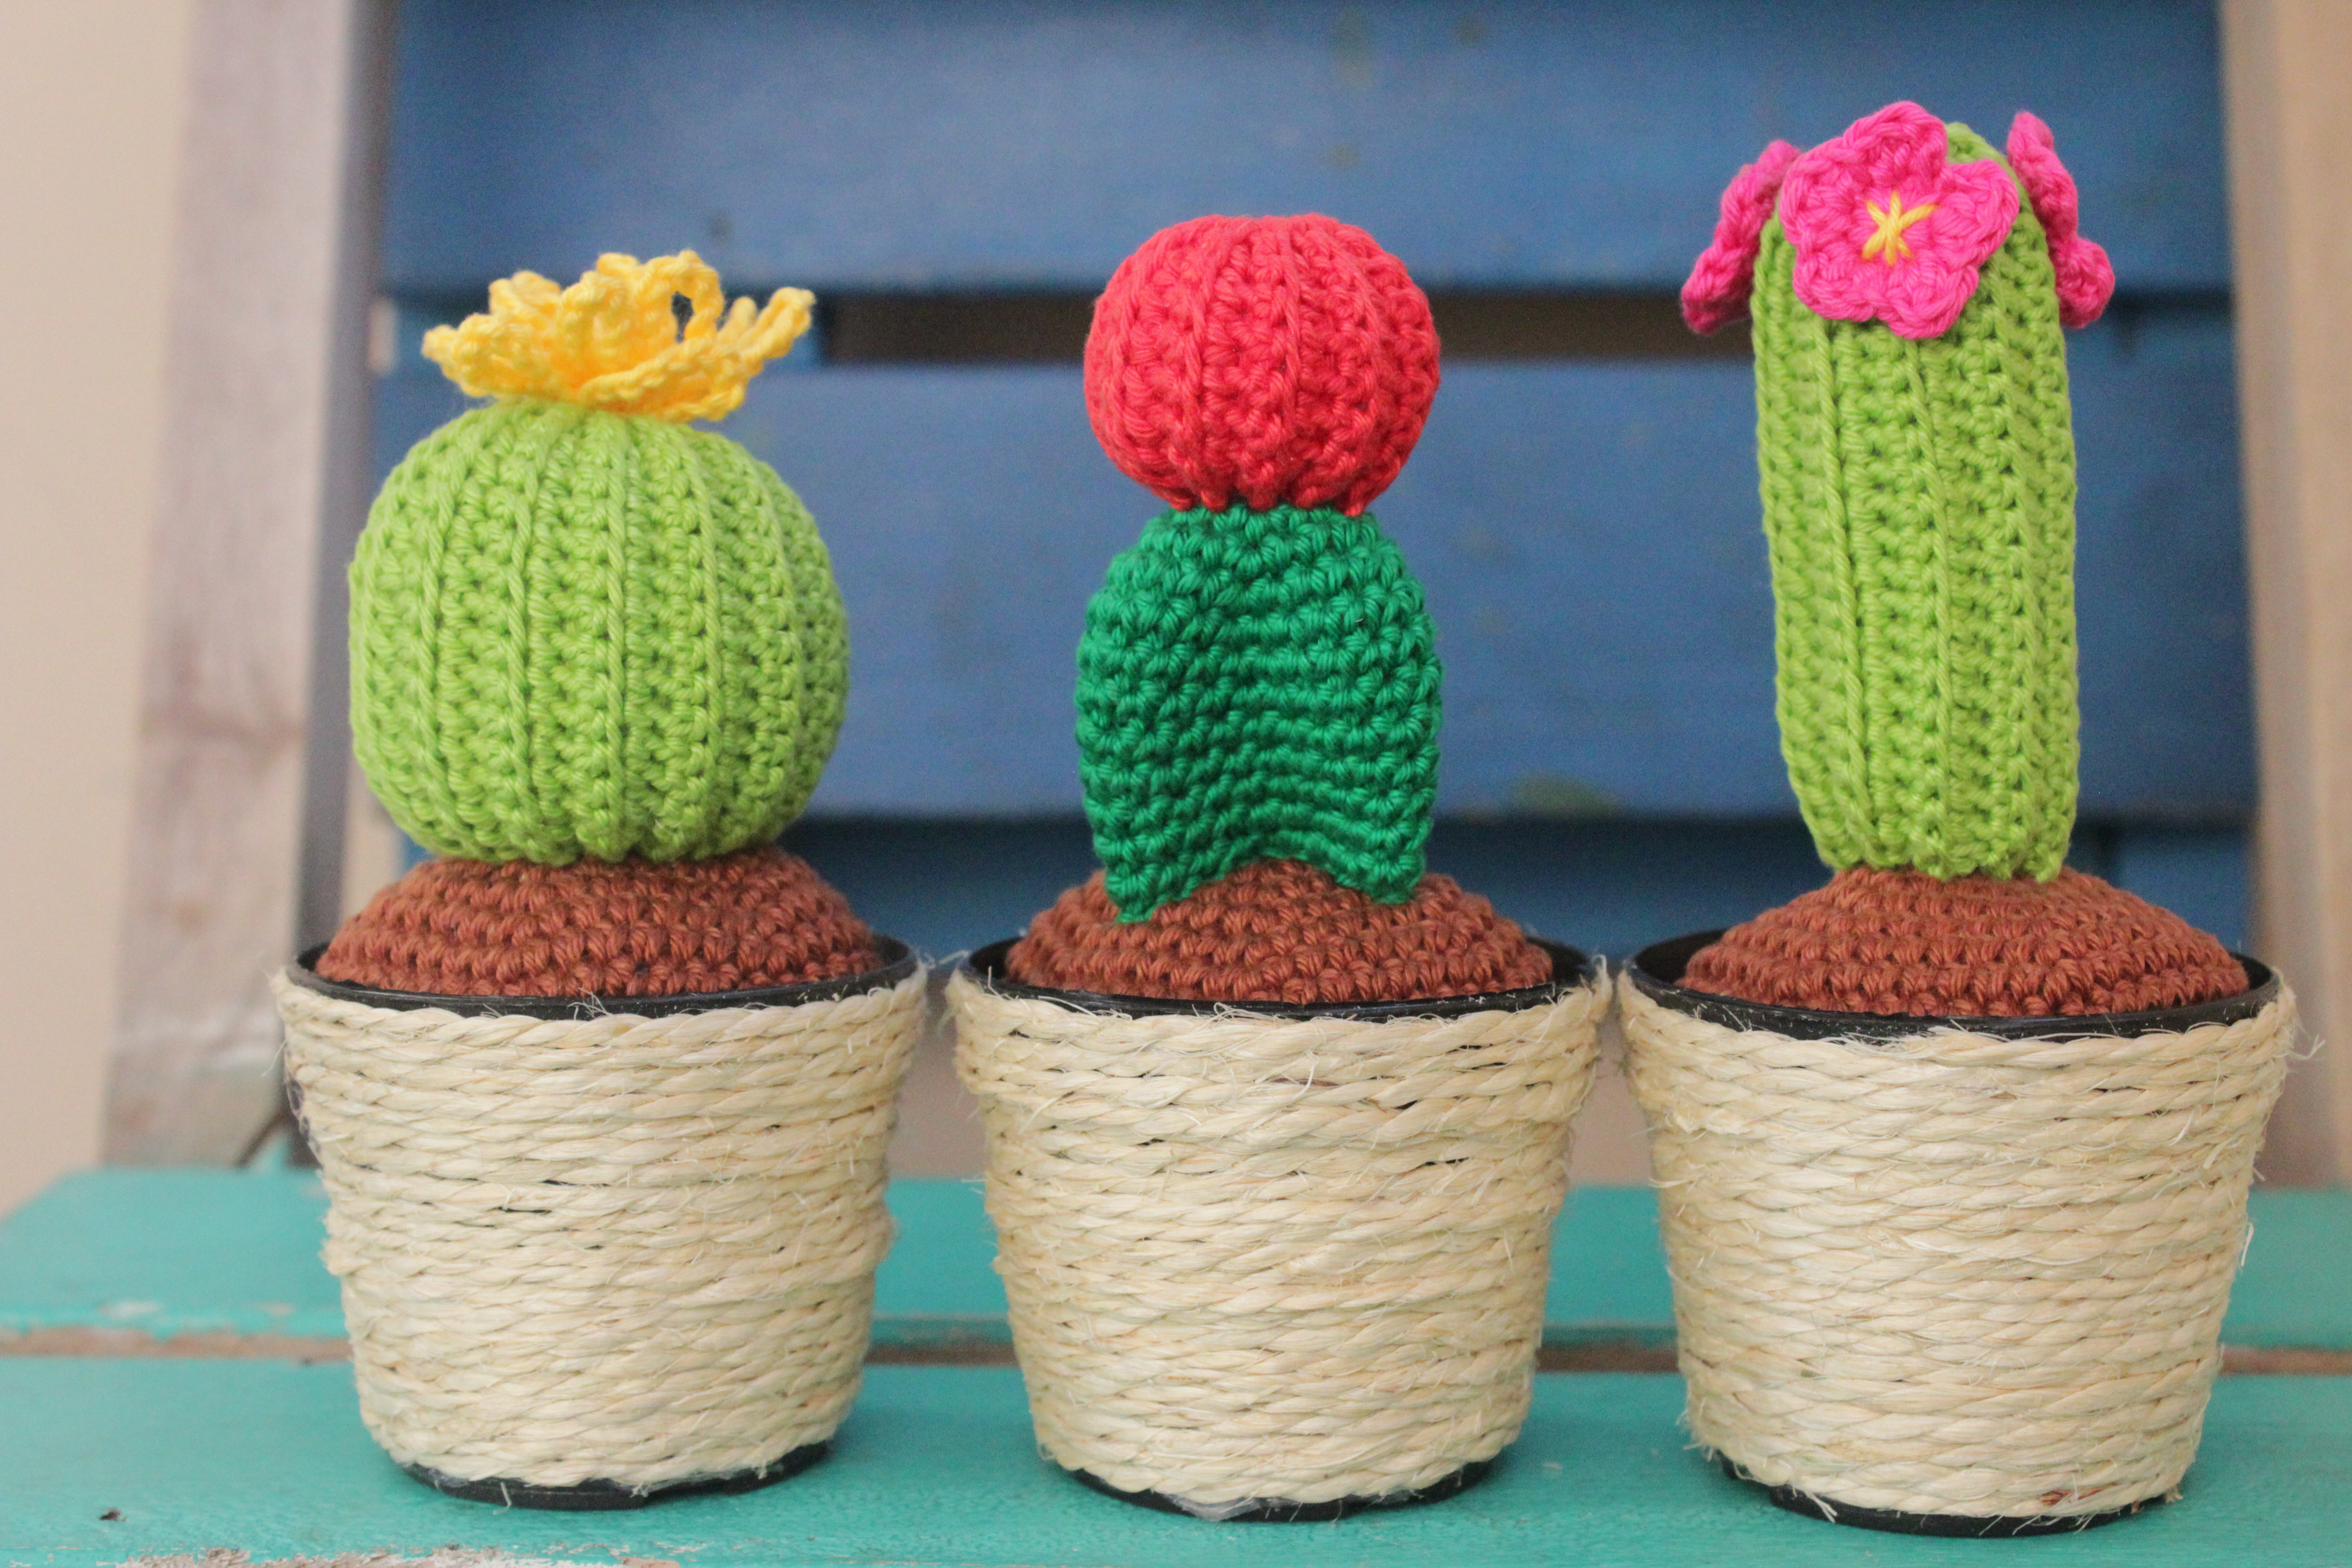 Crochet Characters Soft & Snuggly Cacti: 12 Succulent Designs ... | 3456x5184